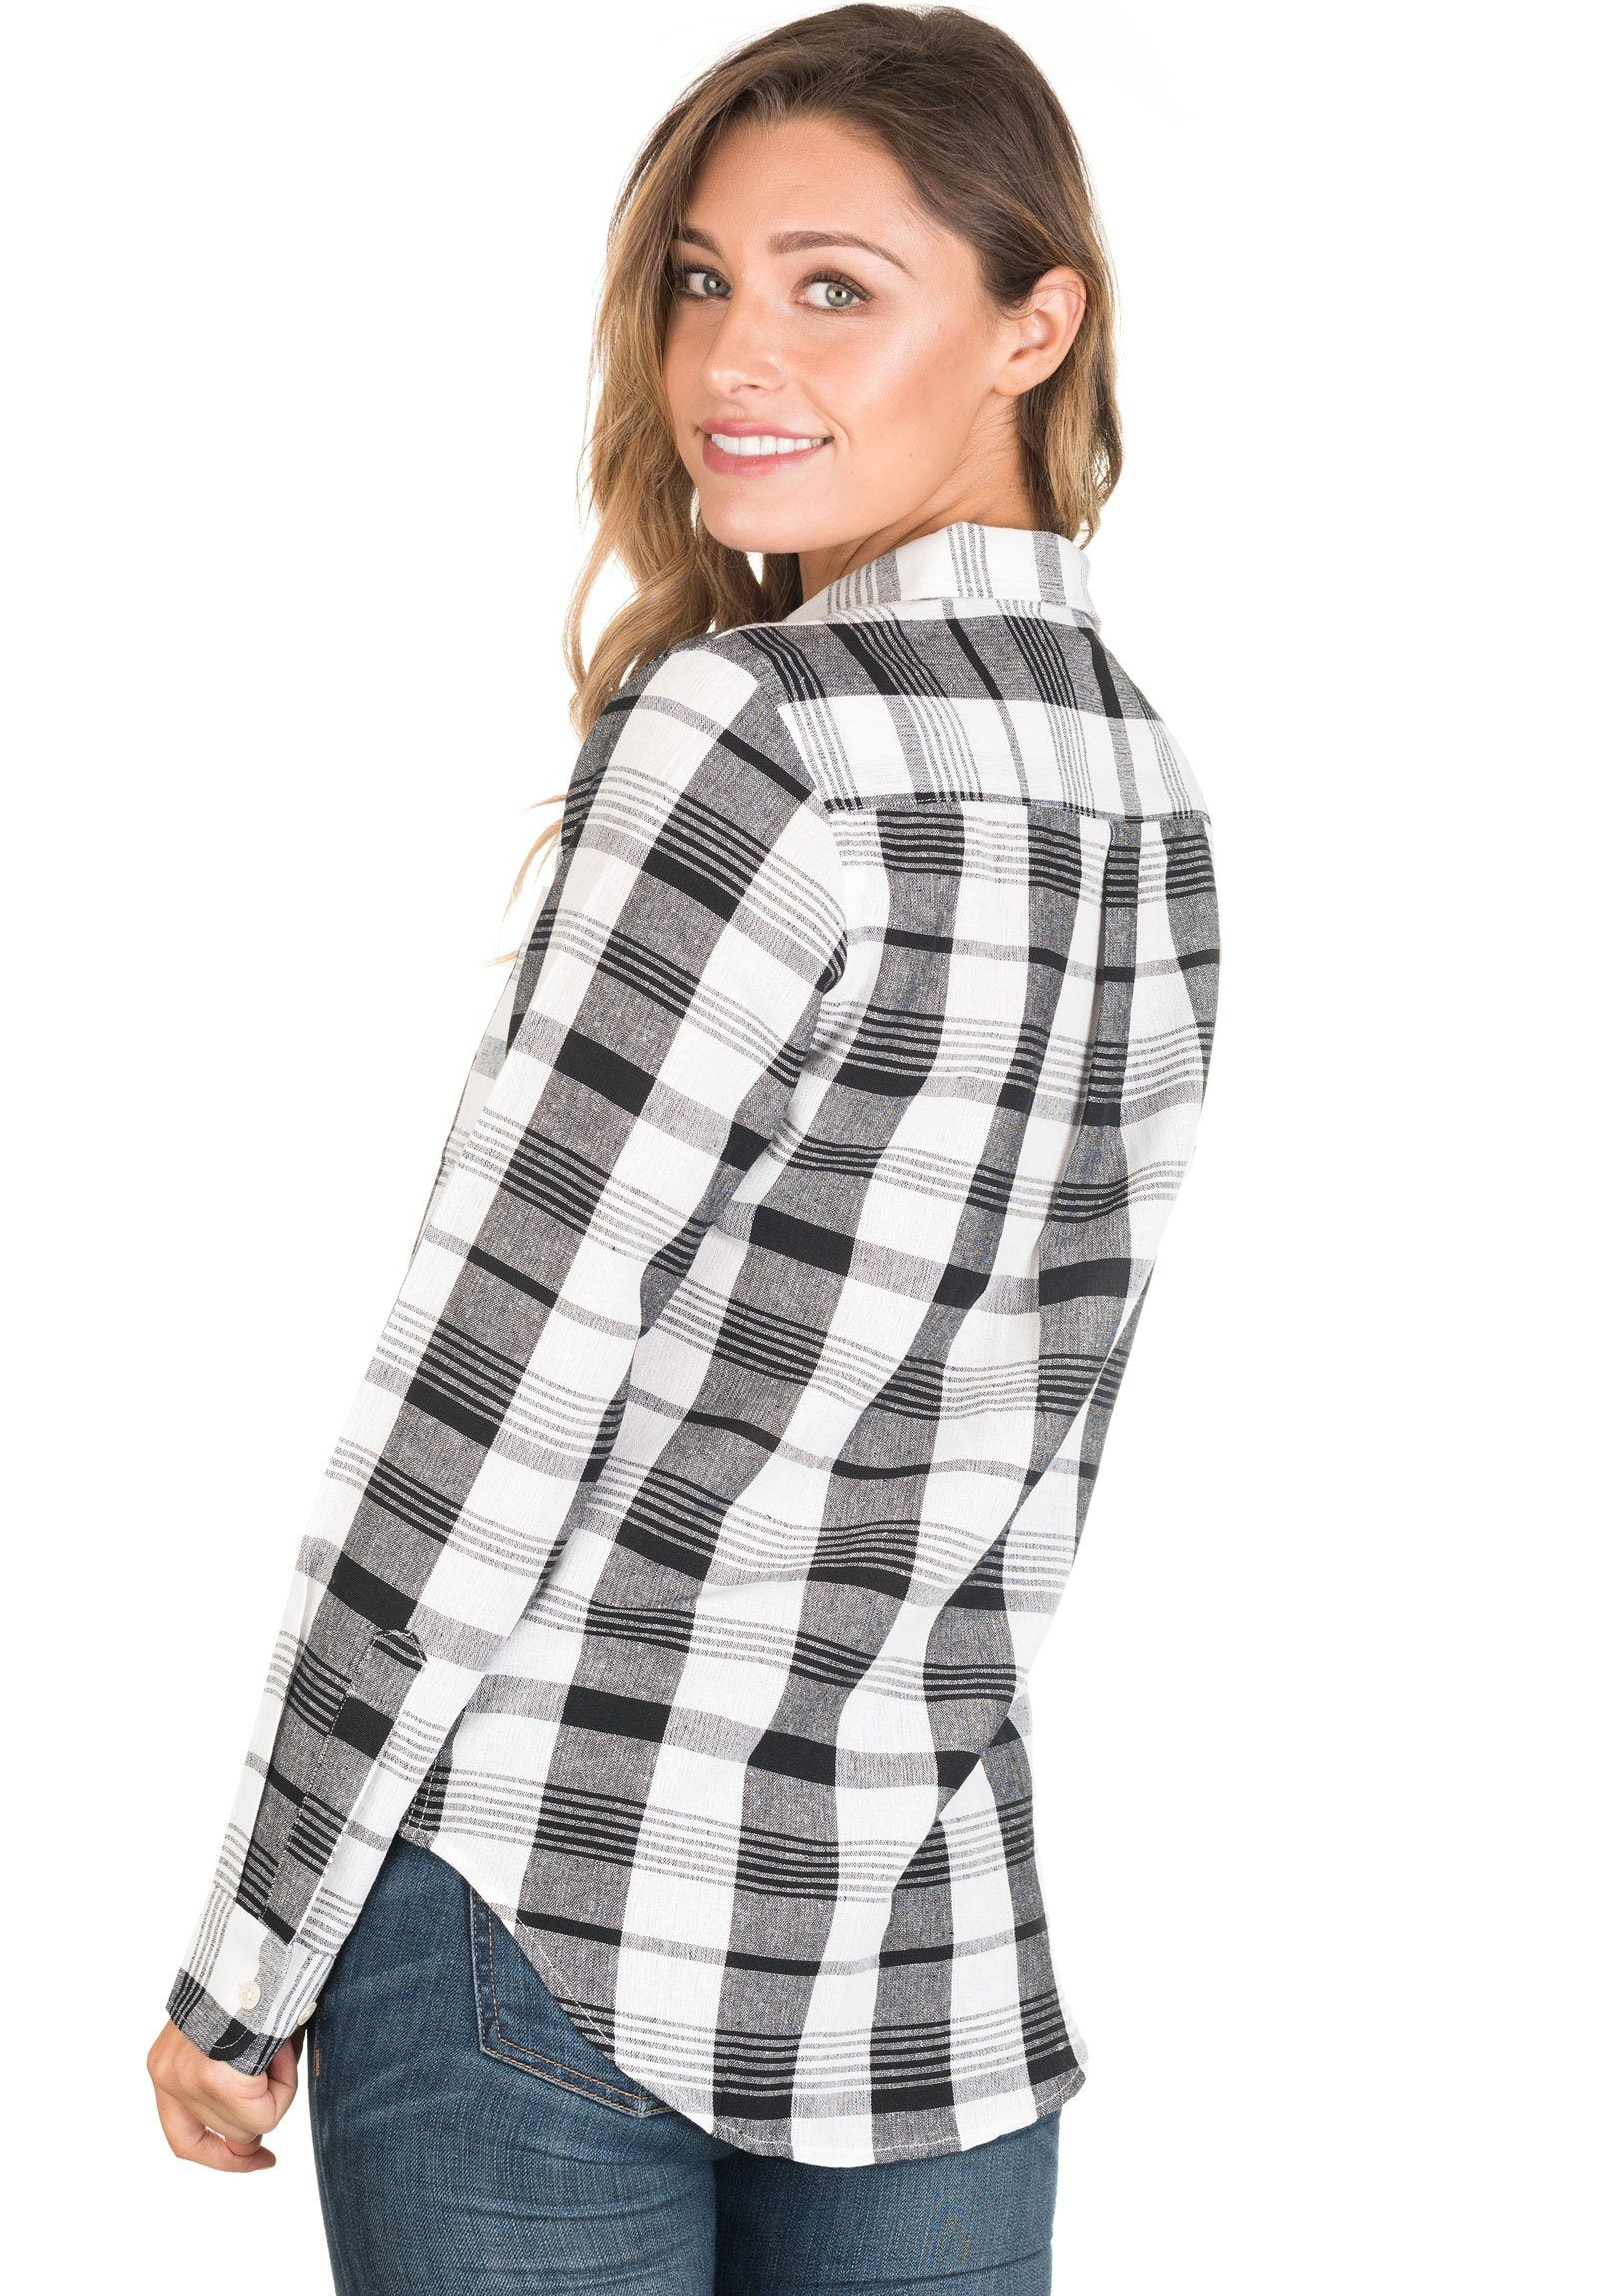 Plaid, Black & White linen check shirt